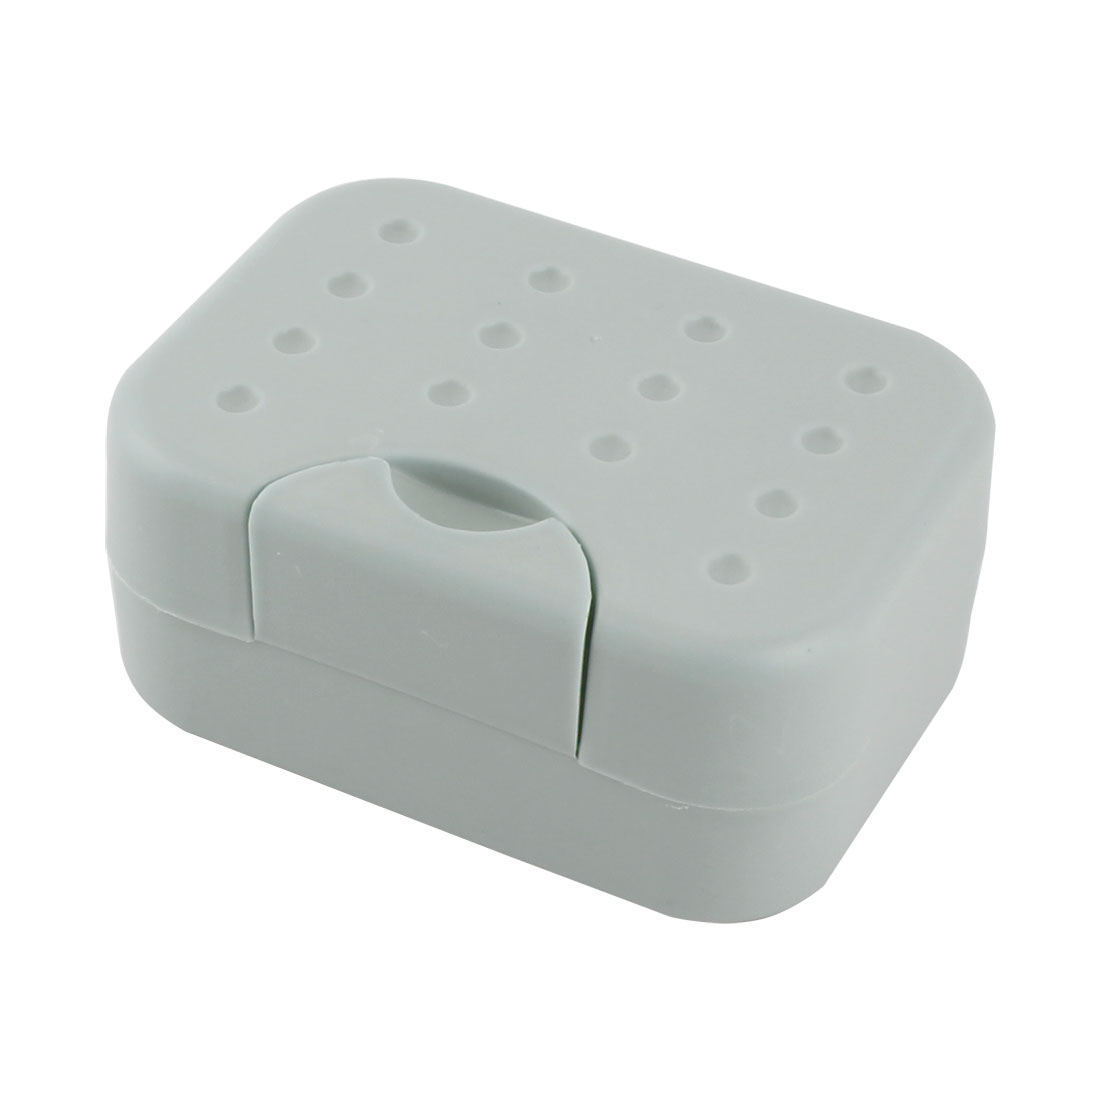 Household Travel Outside Plastic Rectangle Shower Soap Holder Box Dish Container Gray